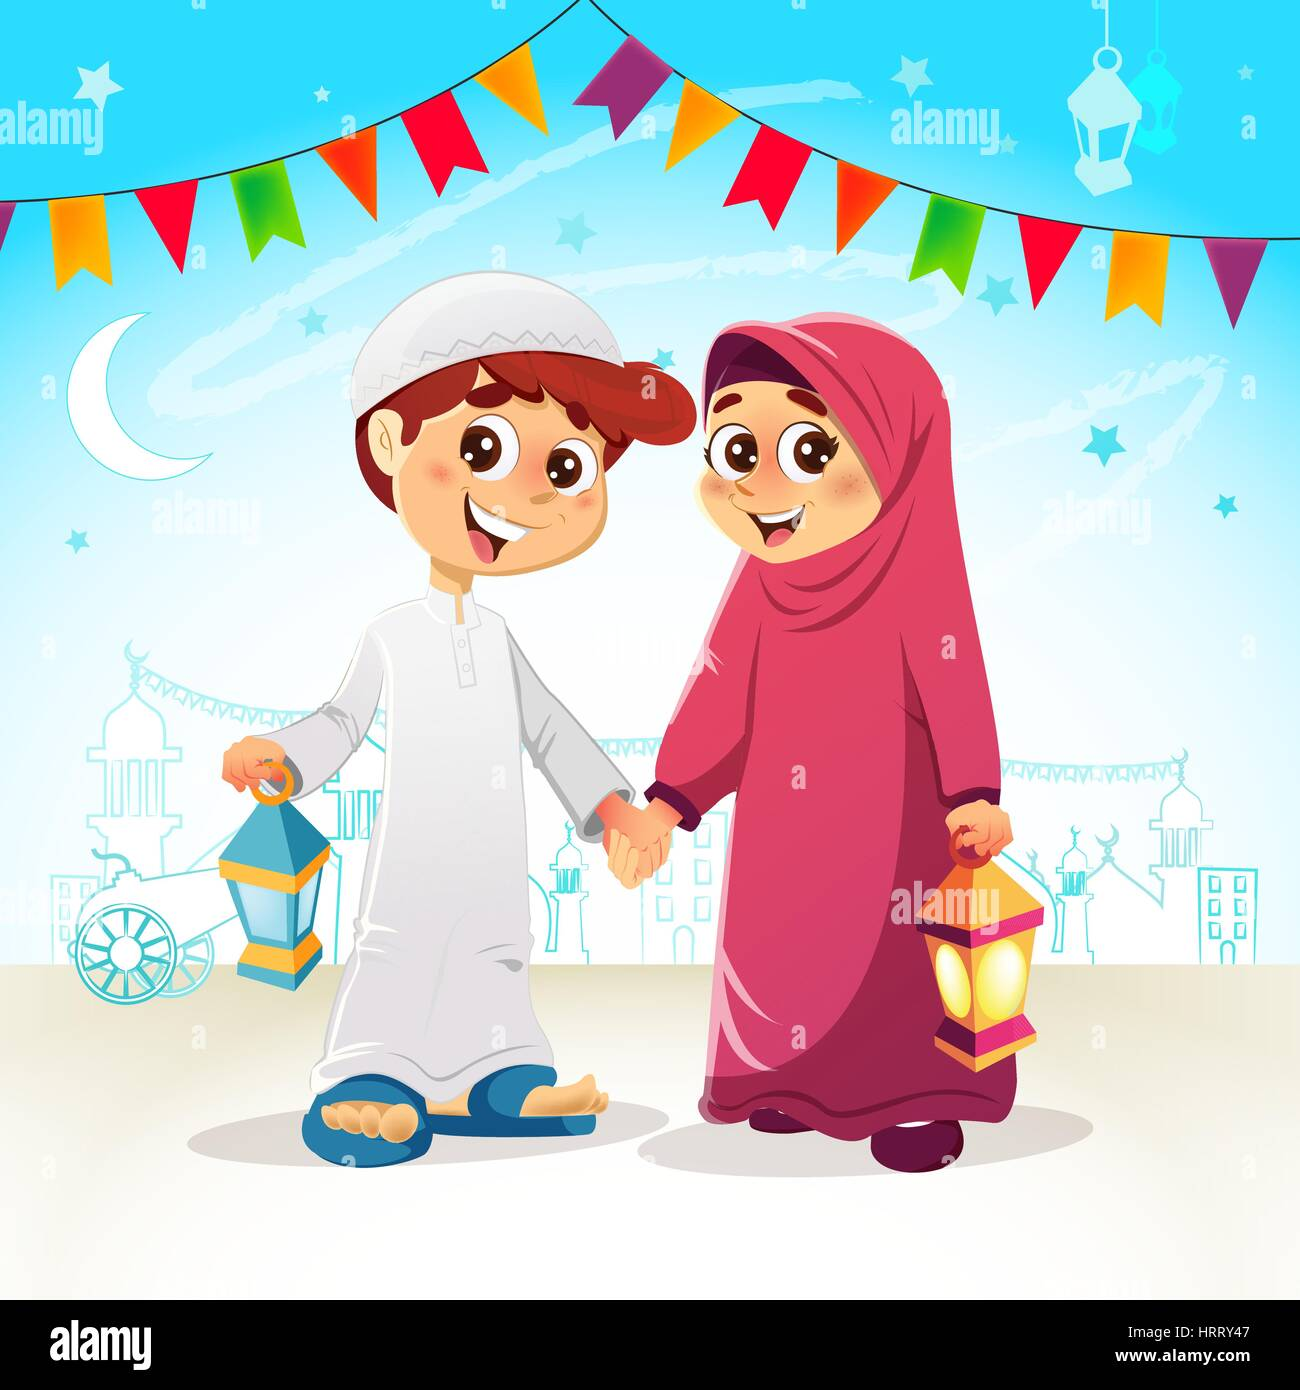 Vector Illustration Of Arabic Young Muslim Boy And Girl